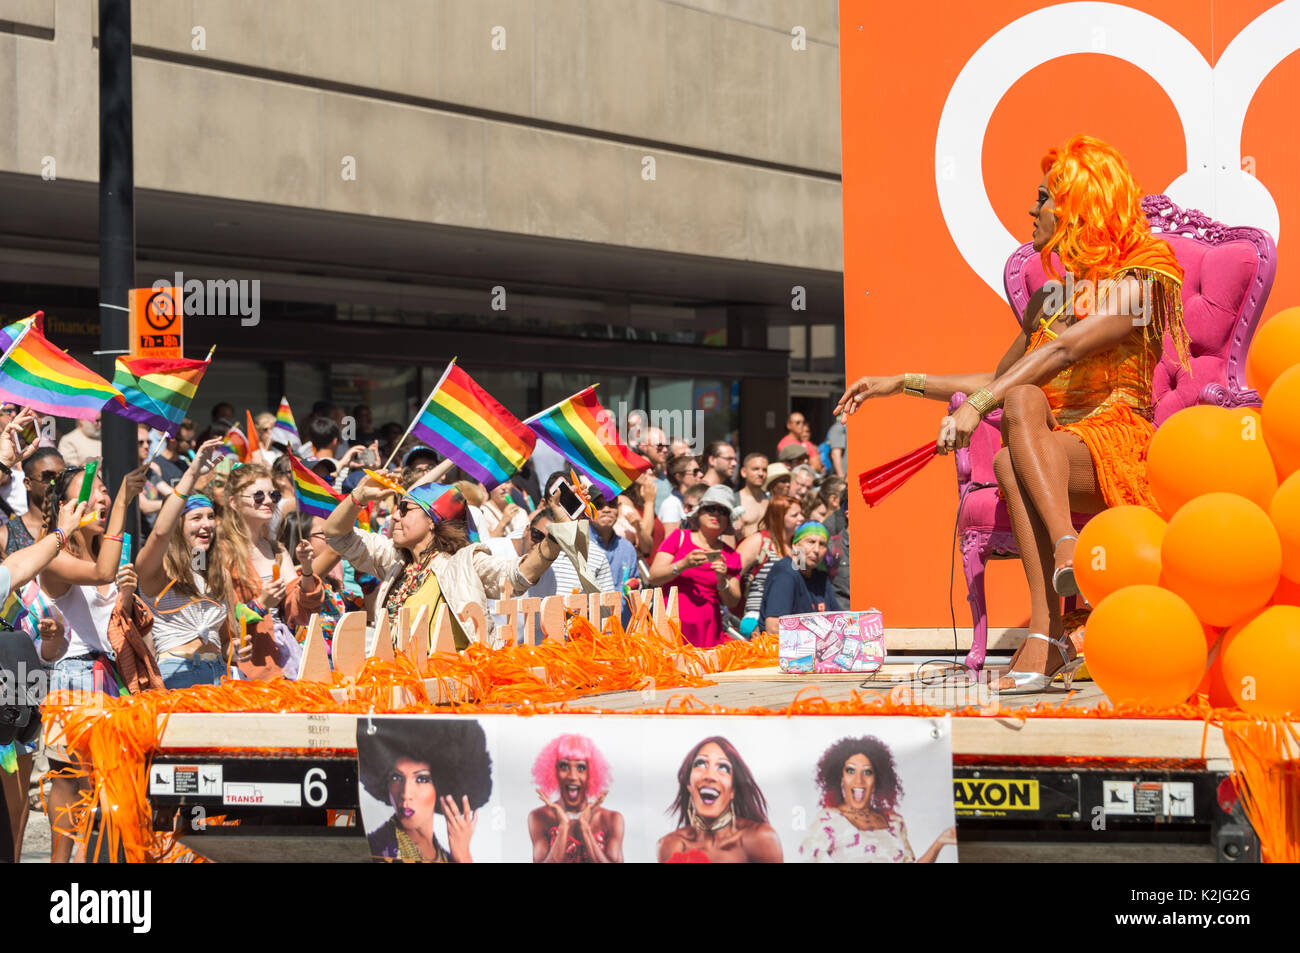 Montreal, 20 August 2017: Drag queen taking part in Montreal Gay Pride Parade - Stock Image